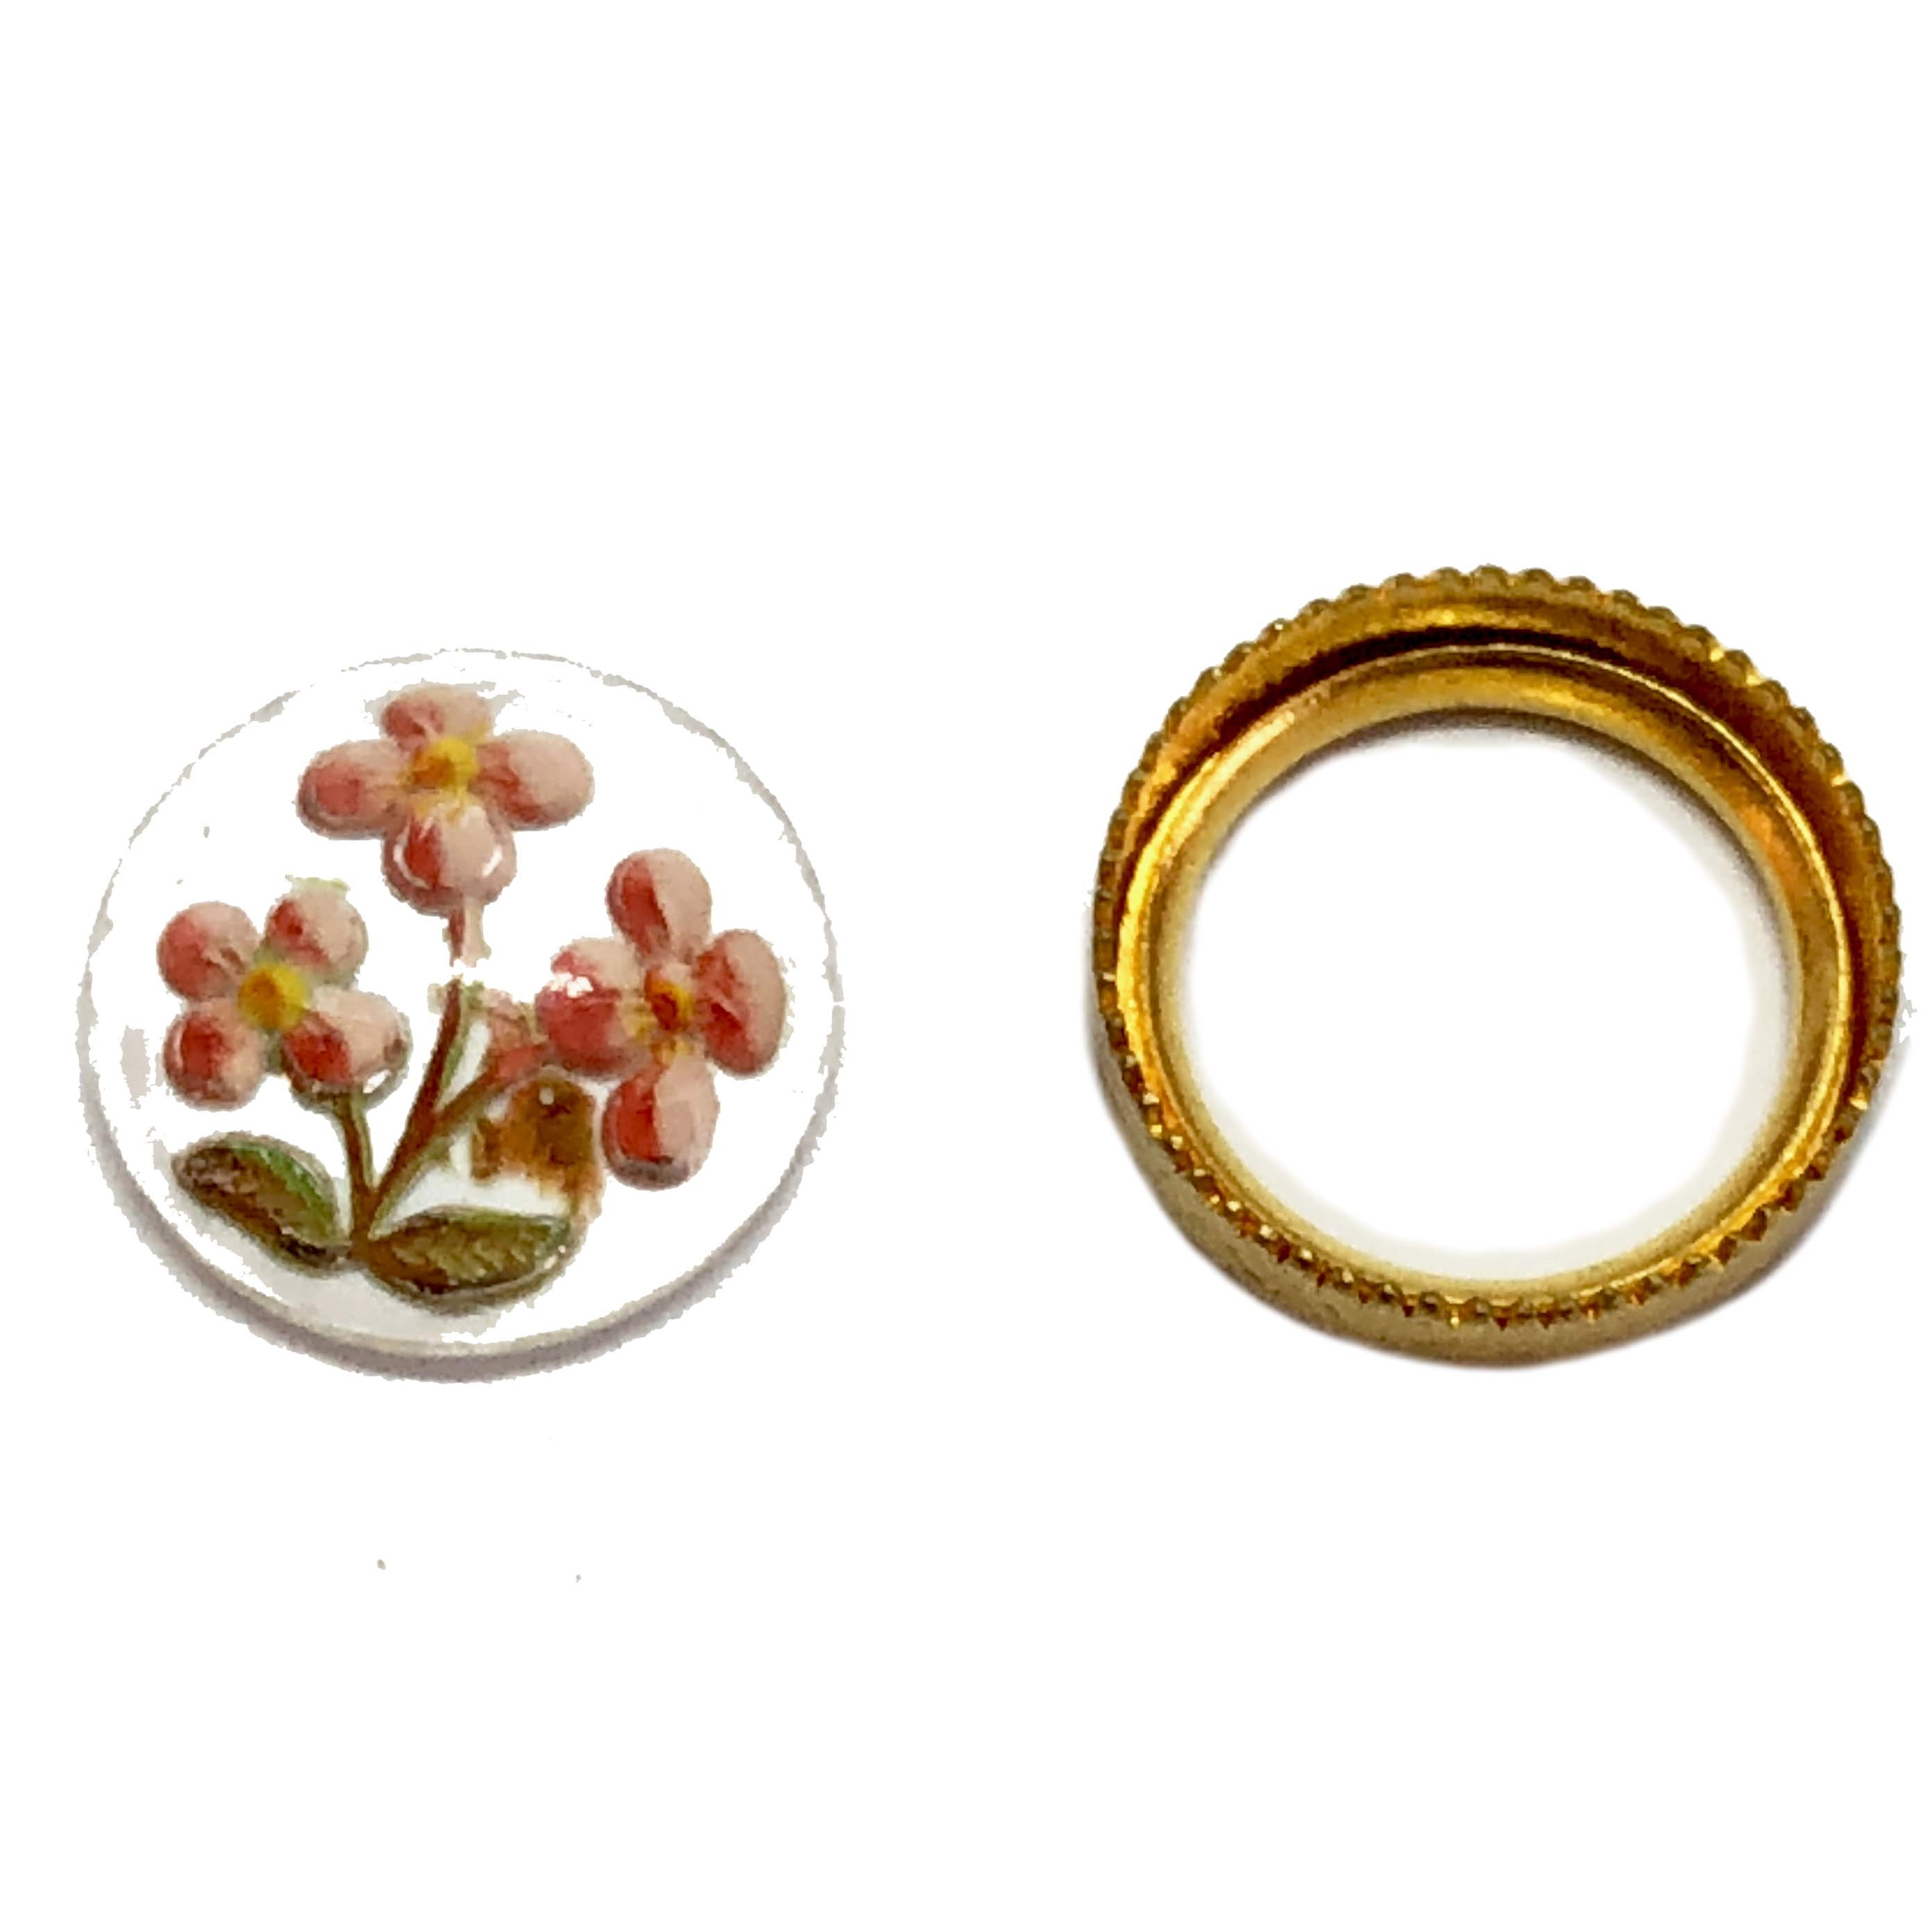 floral cab and bezel set, peach, 11mm, 06112, B'sue Boutiques, reverse paint cabochons, flower jewelry, vintage jewellery supplies, jewelry making supplies, peach flowers, Czech glass, Czech glass cameos, reverse paint cameos,